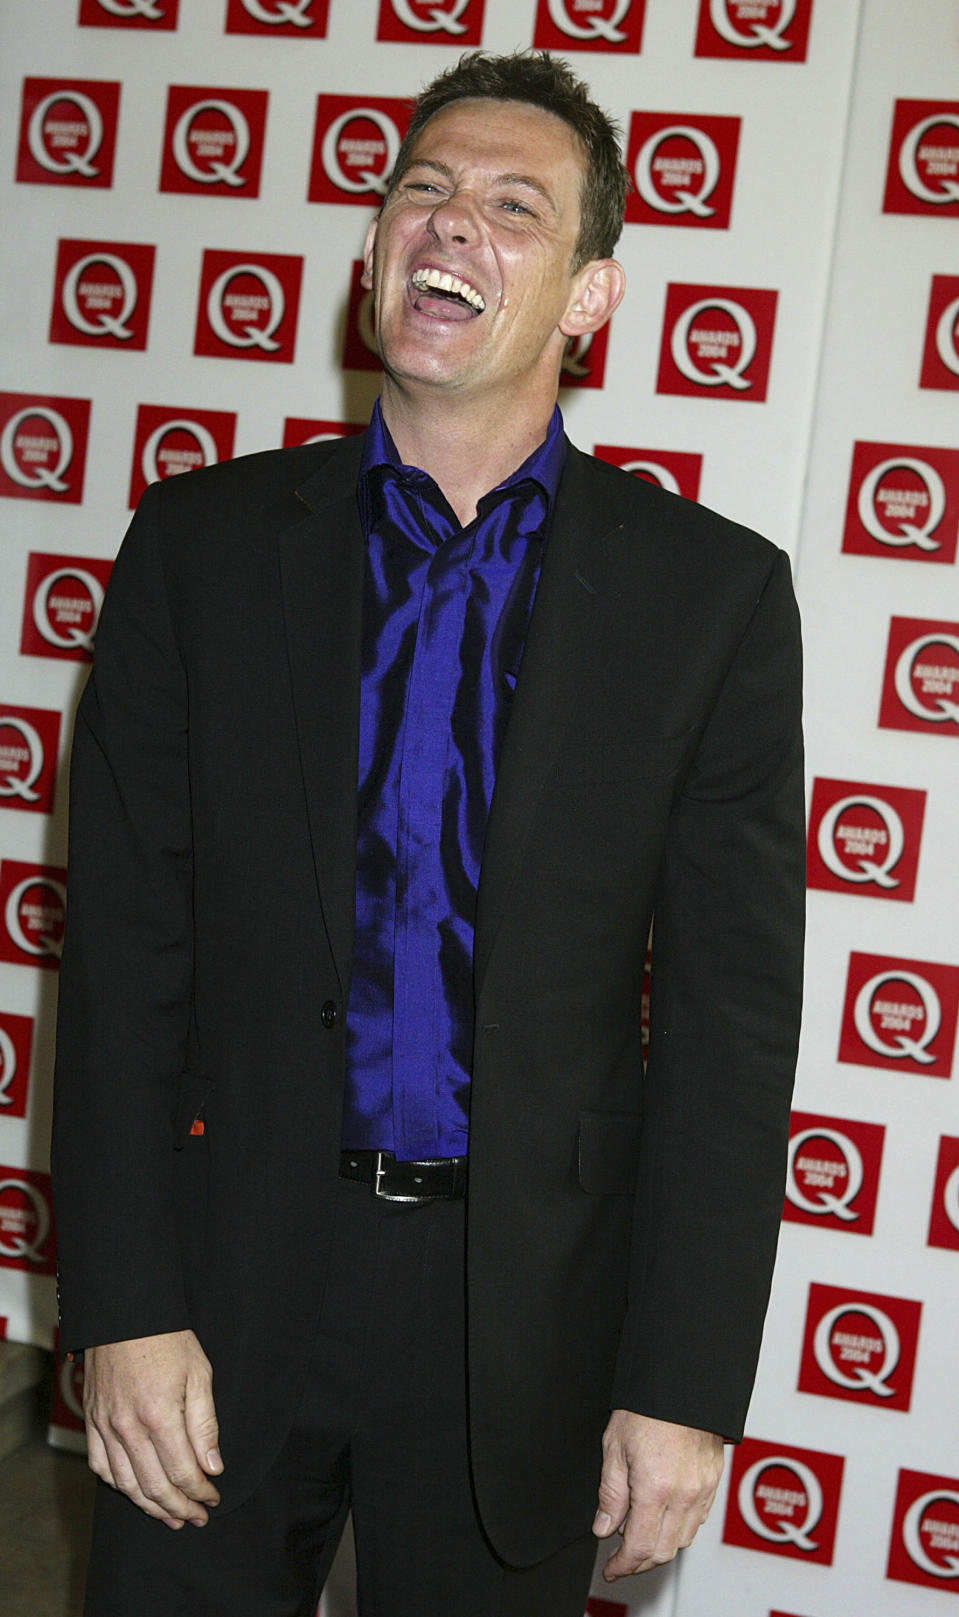 LONDON - OCTOBER 4: Matthew Wright arrives at the Q Awards 2004 at Grosvenor House, Park Lane on October 4, 2004 in London. The 15th annual music awards are held by Q magazine and honour the best musicians in the industry. (Photo by Jo Hale/Getty Images)